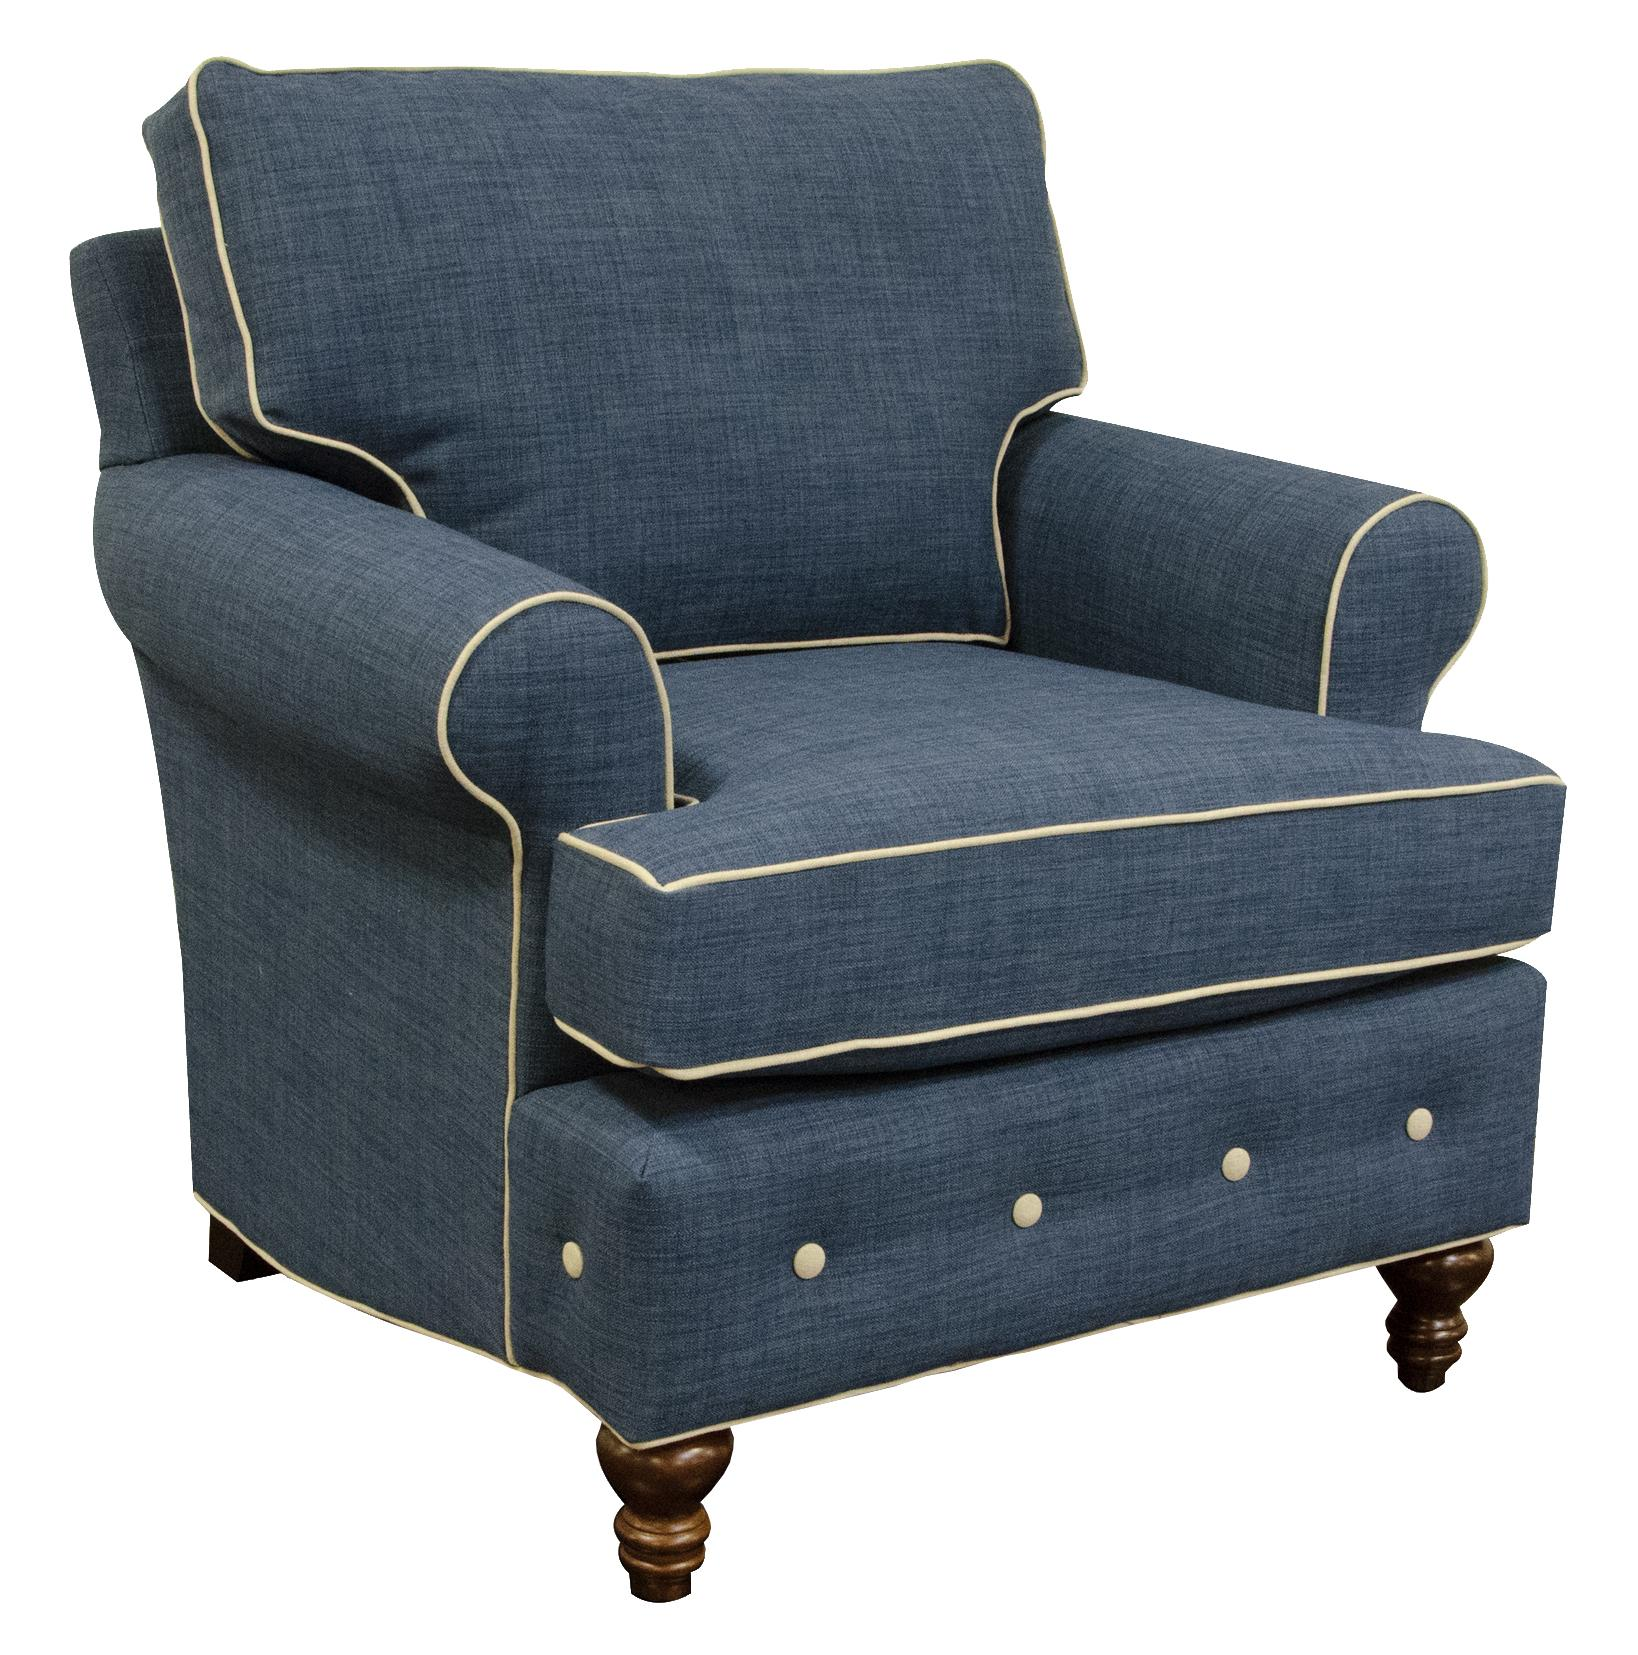 England Evans Living Room Chair - Item Number: 8484CW Roma Blue Dum Dum Natural